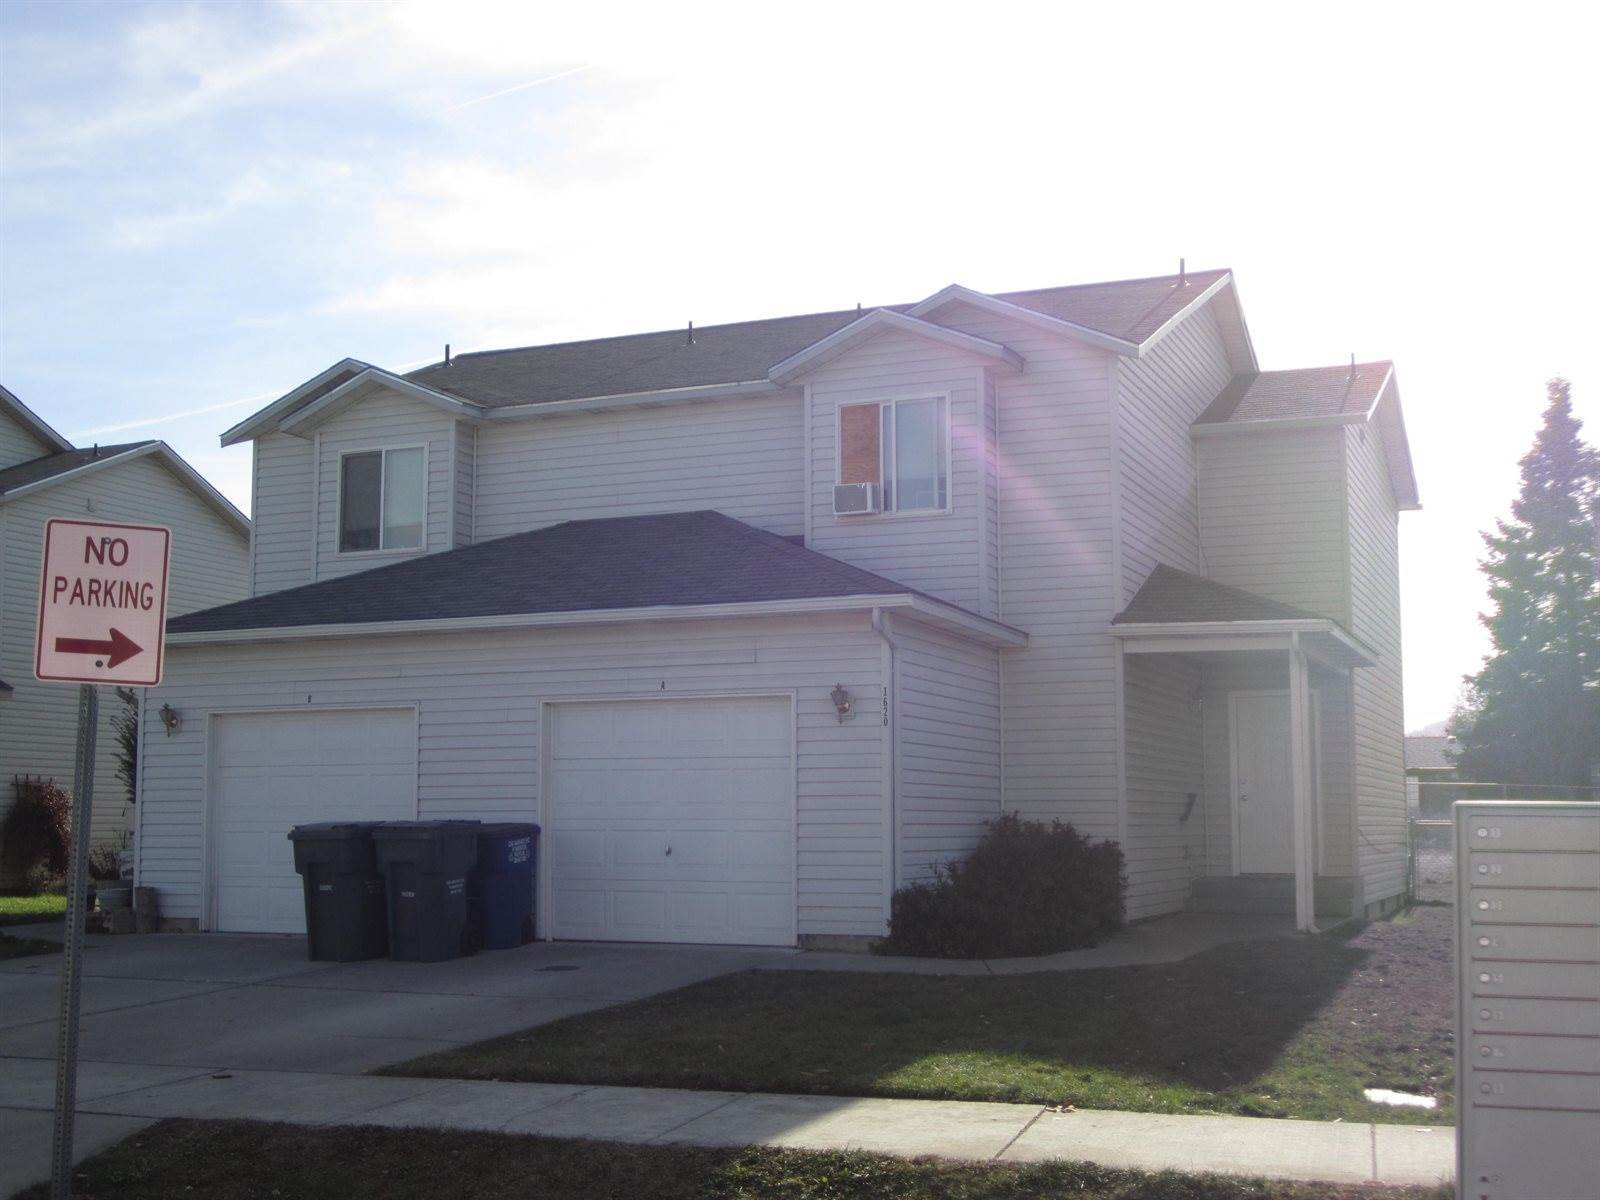 1620 East Coeur D Alene Ave, Post Falls, ID 83854